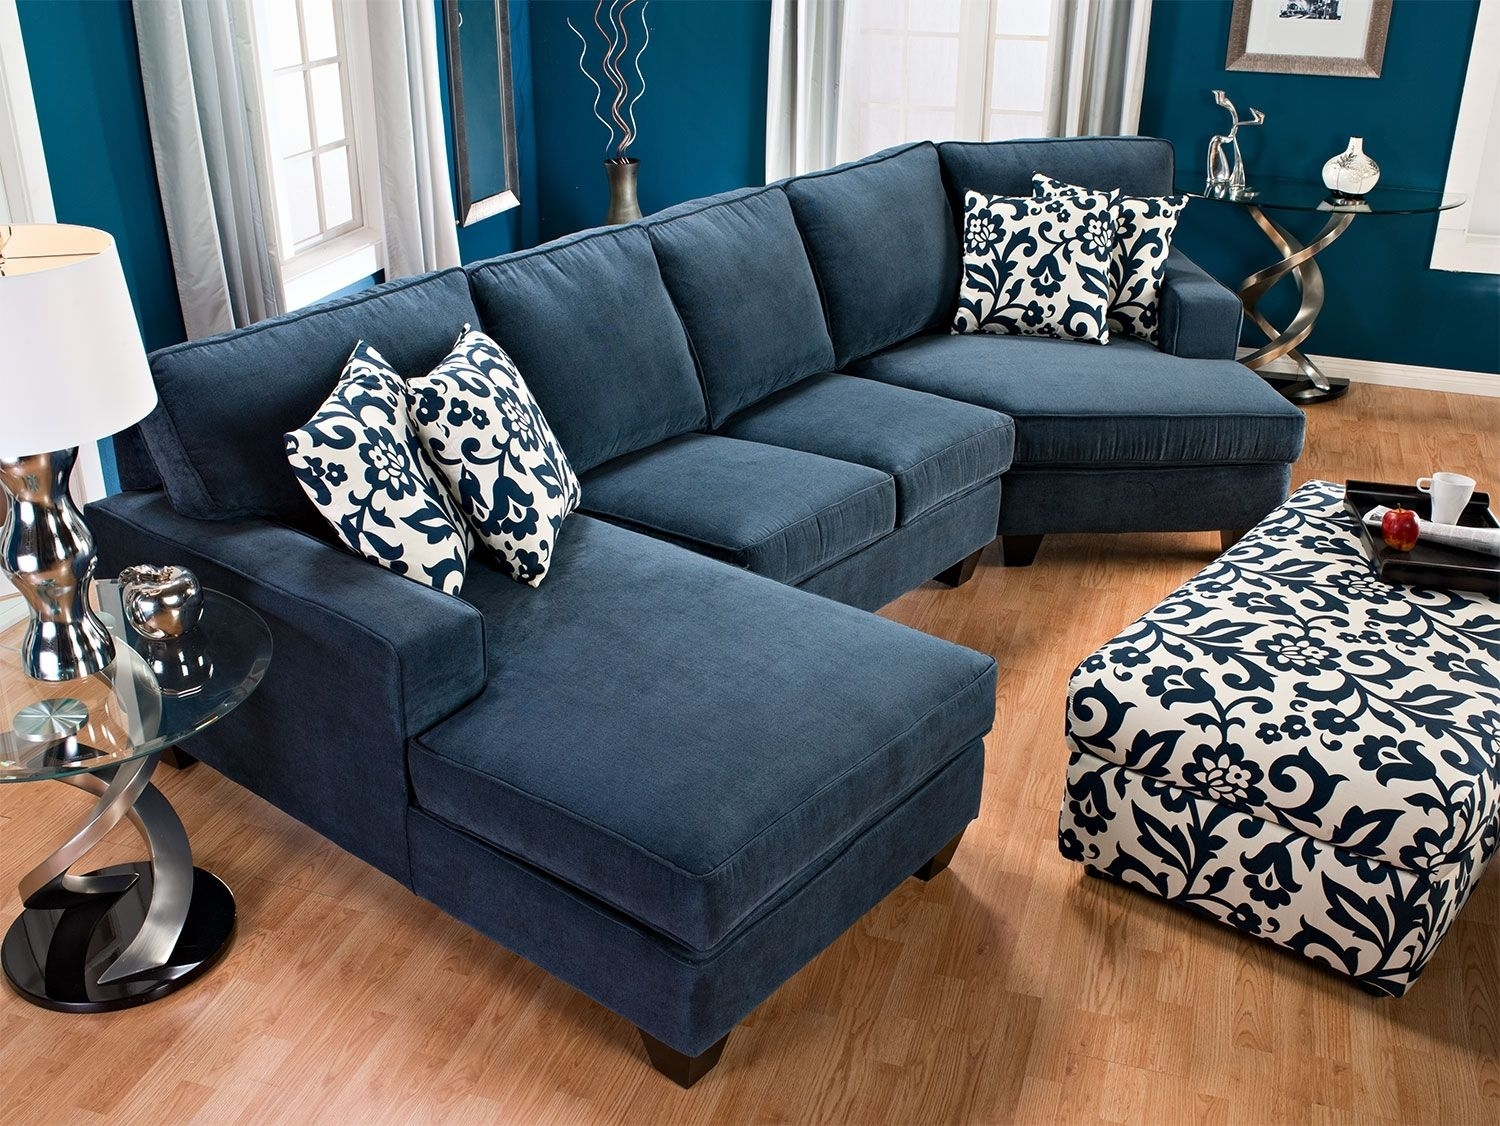 The Exact Couch We Want (View 5 of 10)